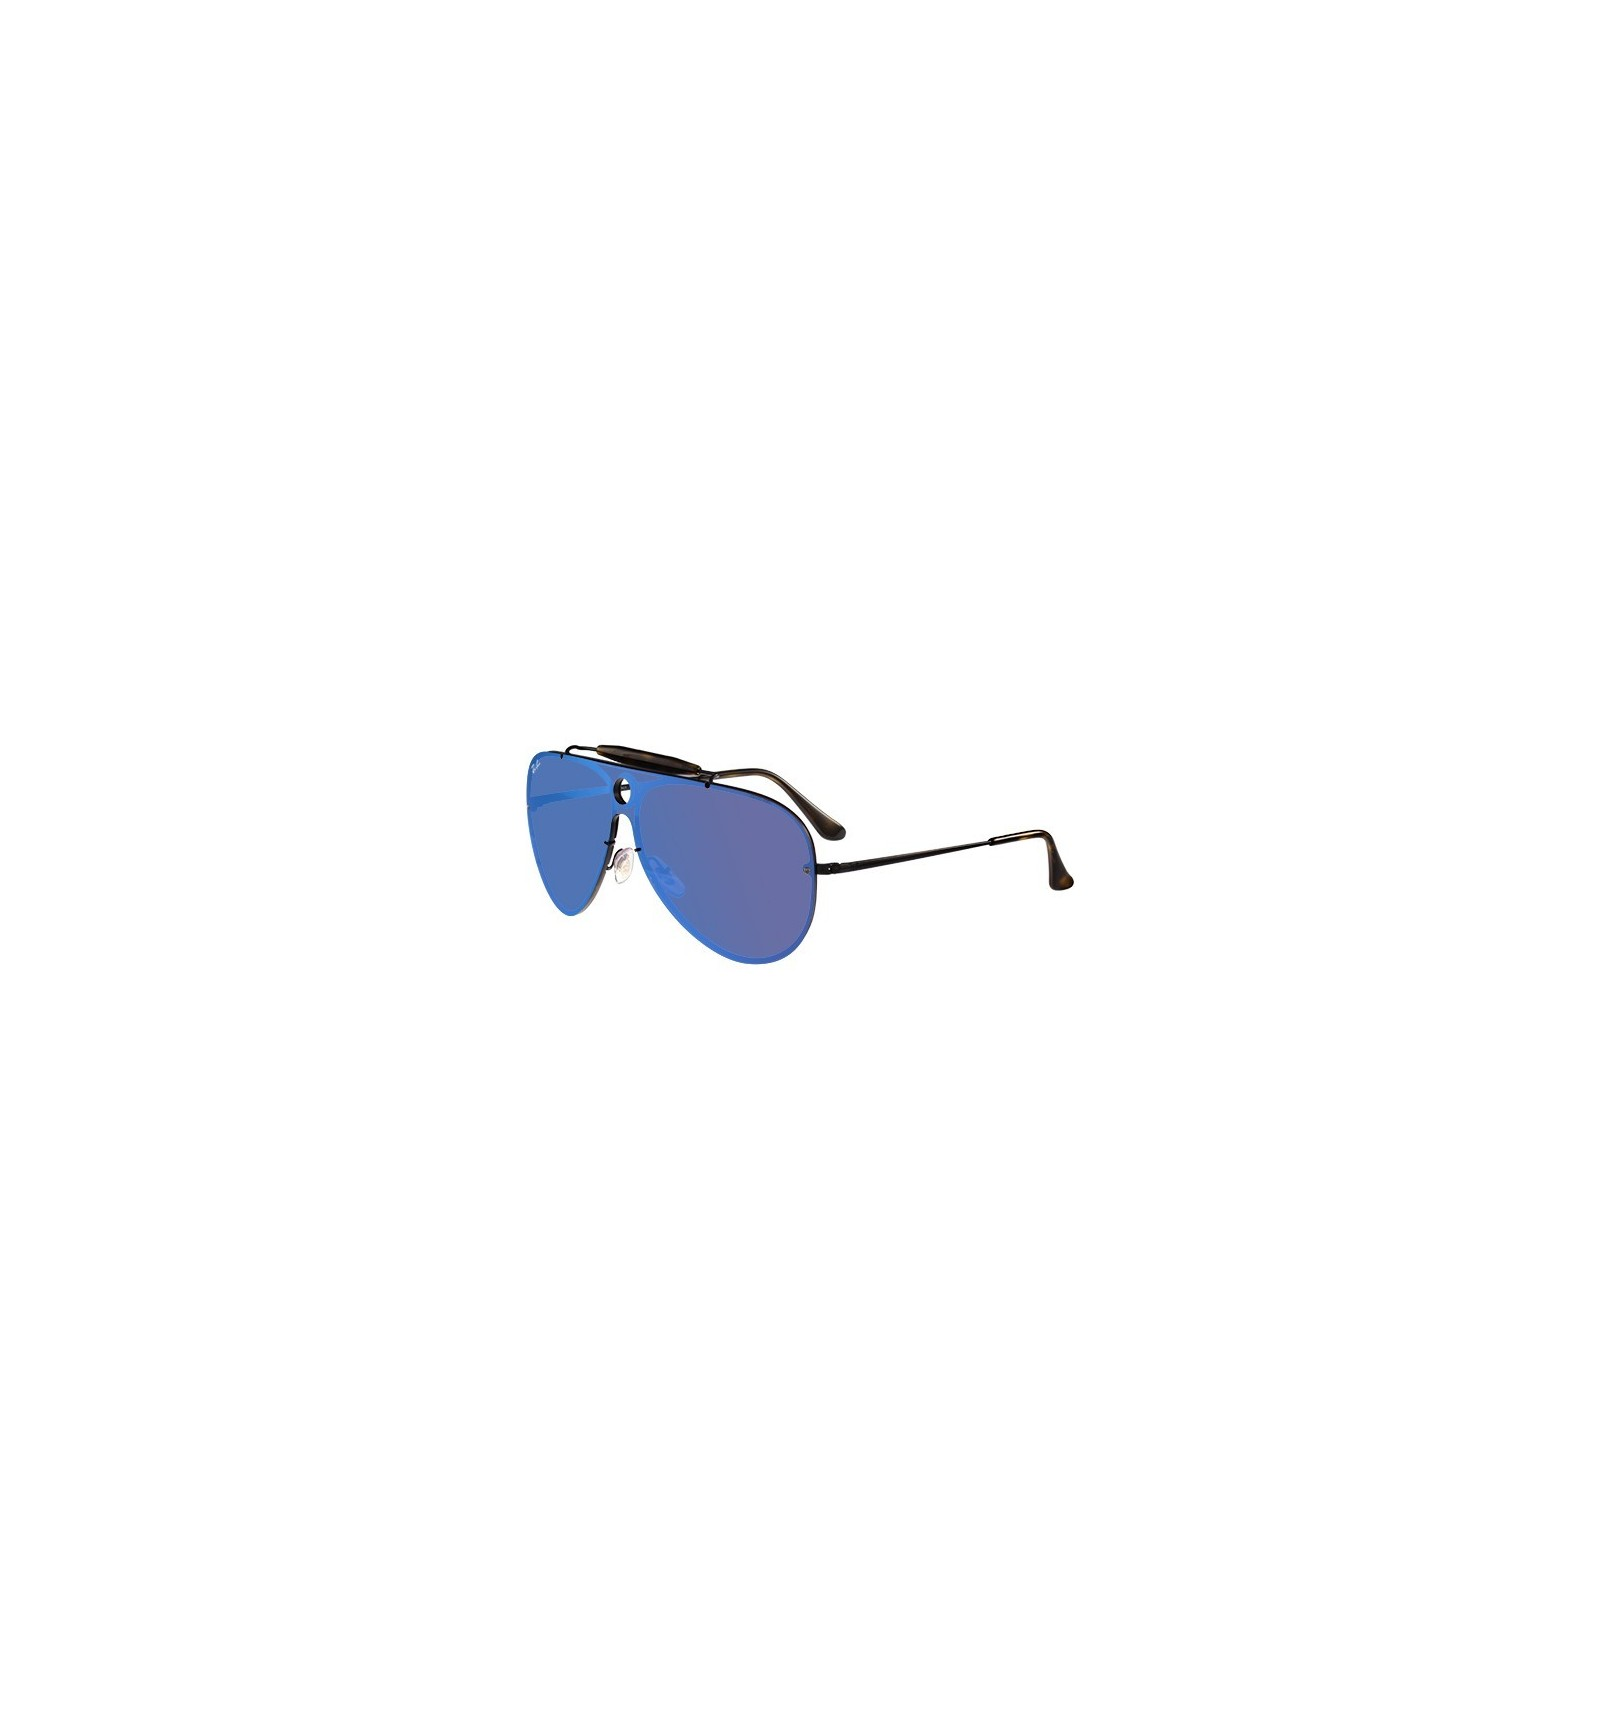 Gafas de sol RAY BAN RB3581 Blaze Shooter Black - Blue Mirror ad03d96b2c7